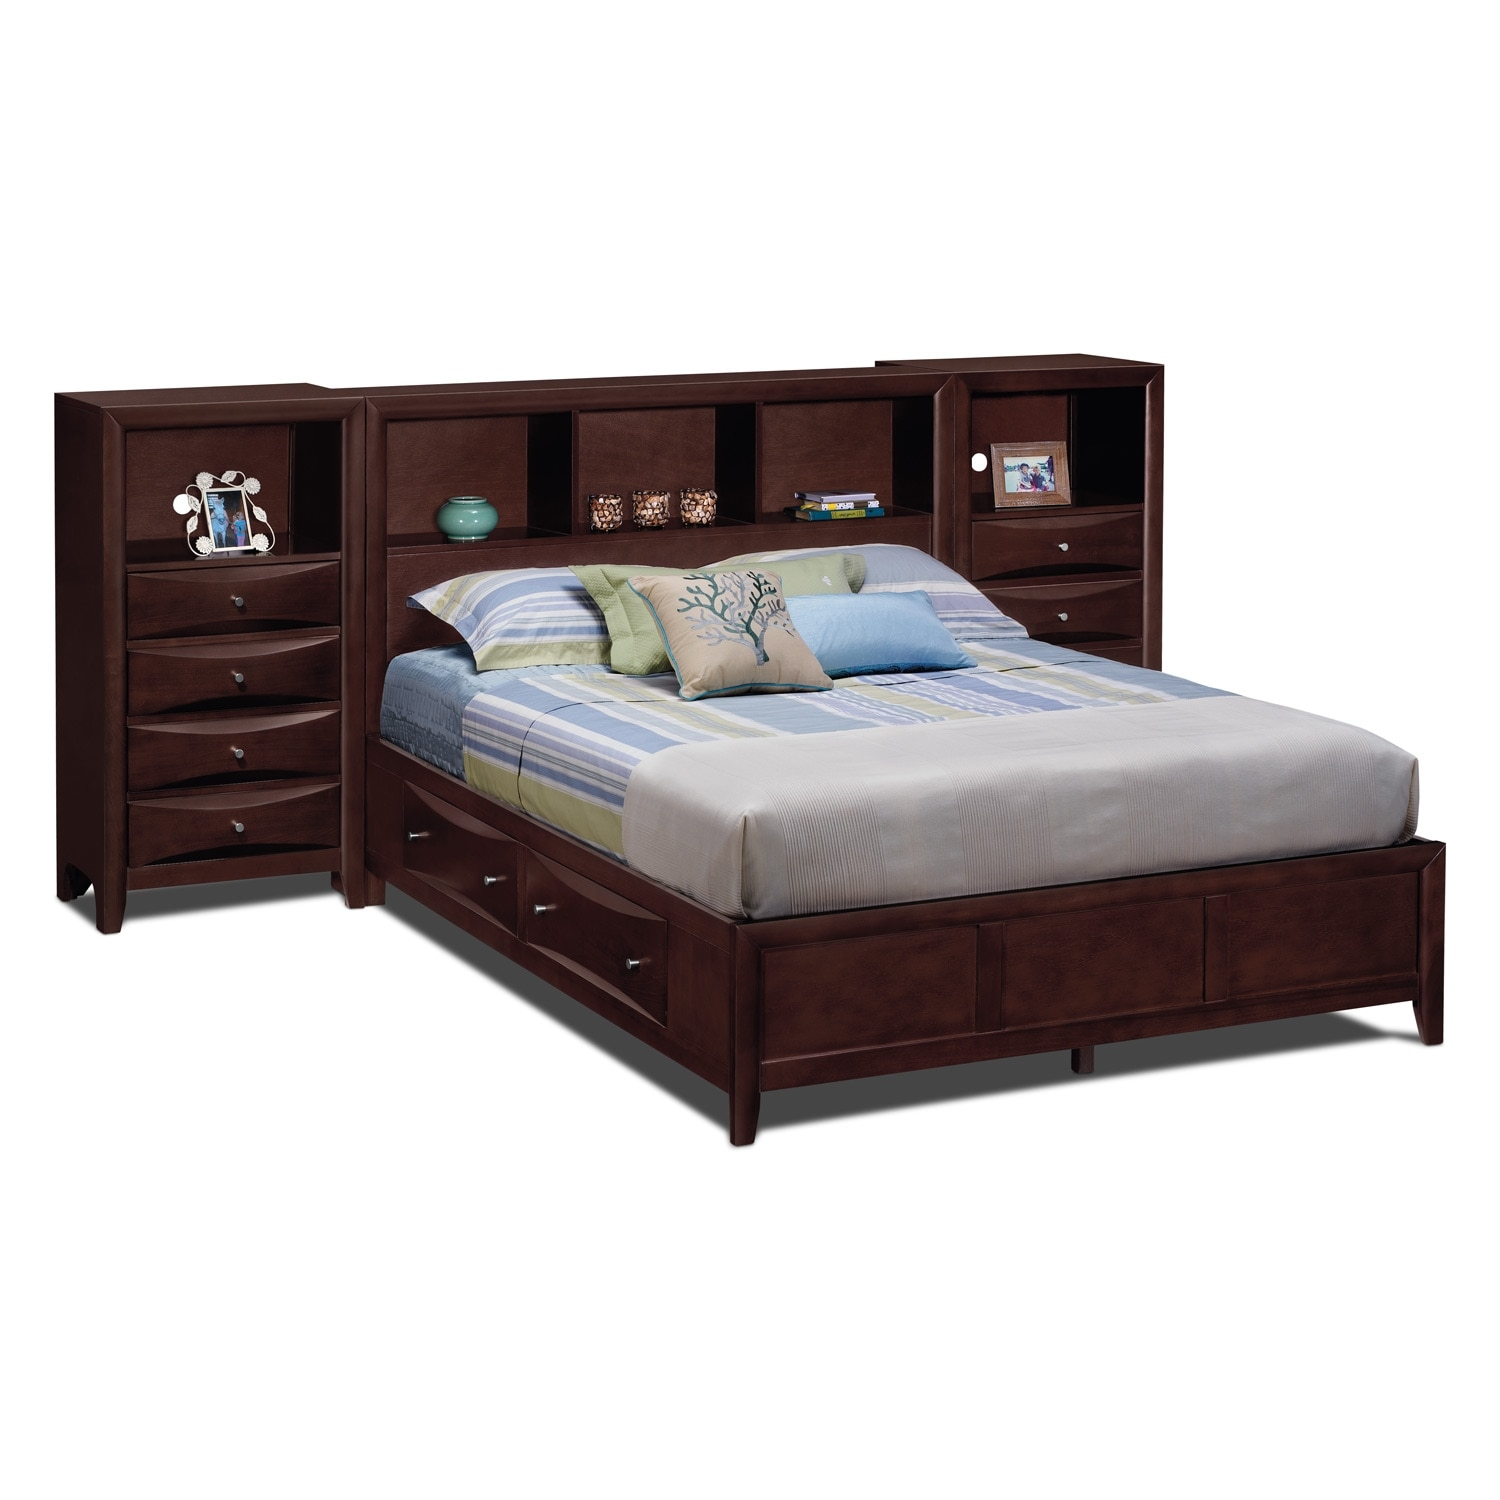 clarion bedroom queen wall bed with piers value city